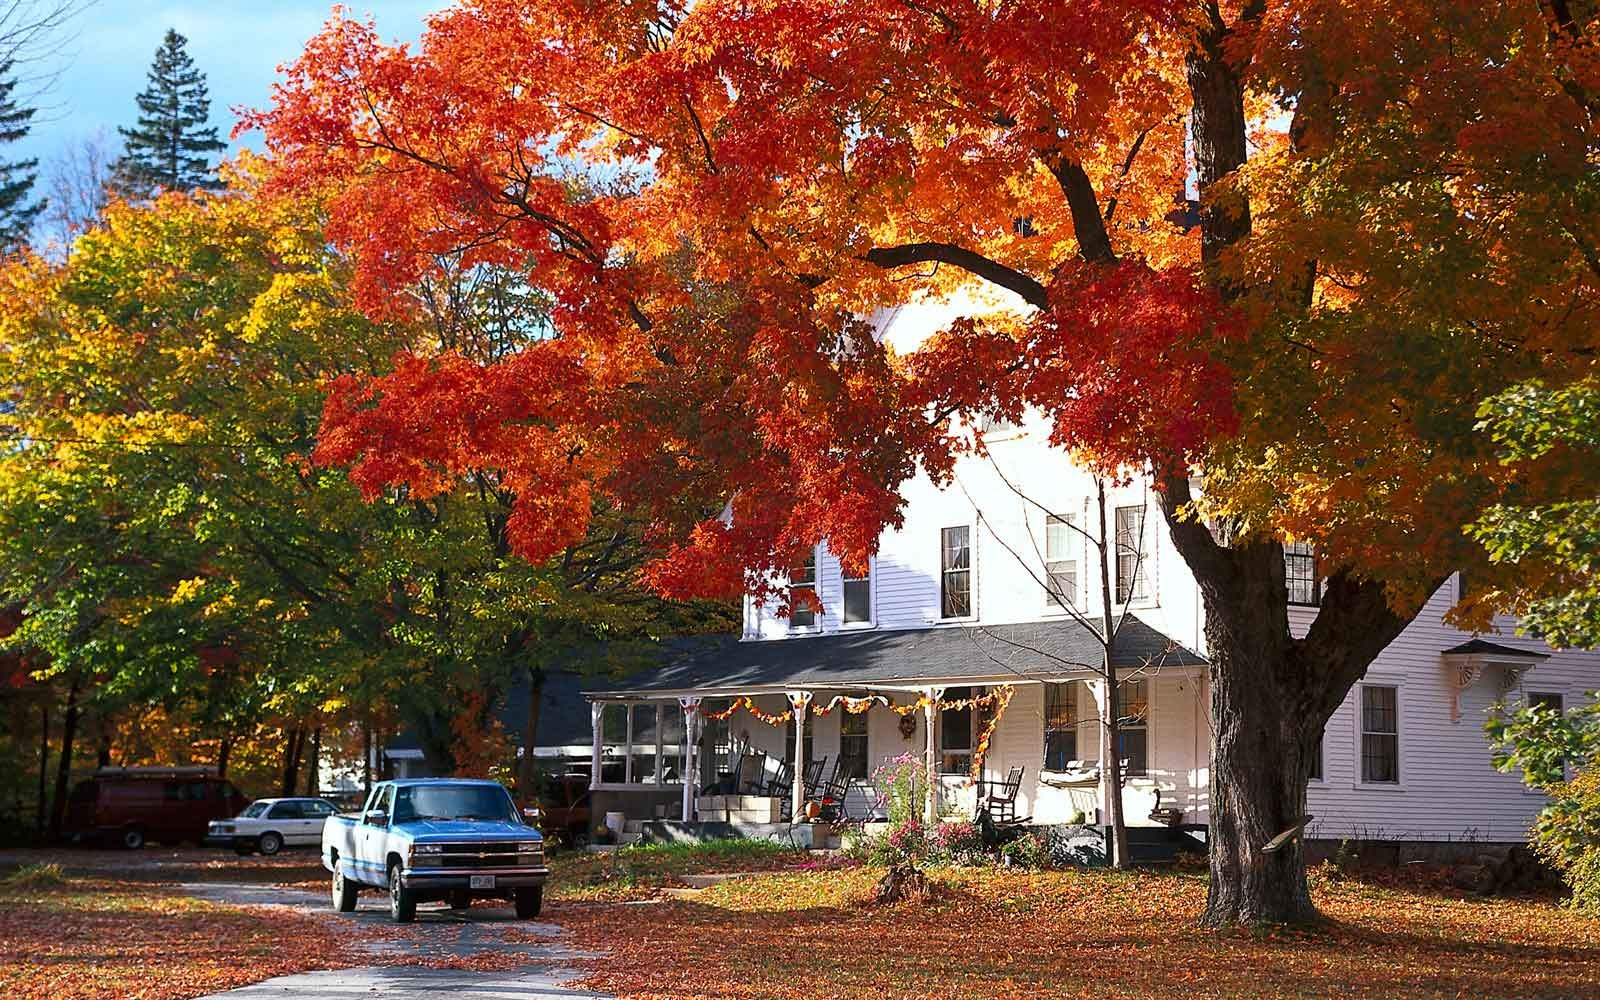 Autumn in North Conway, New Hampshire